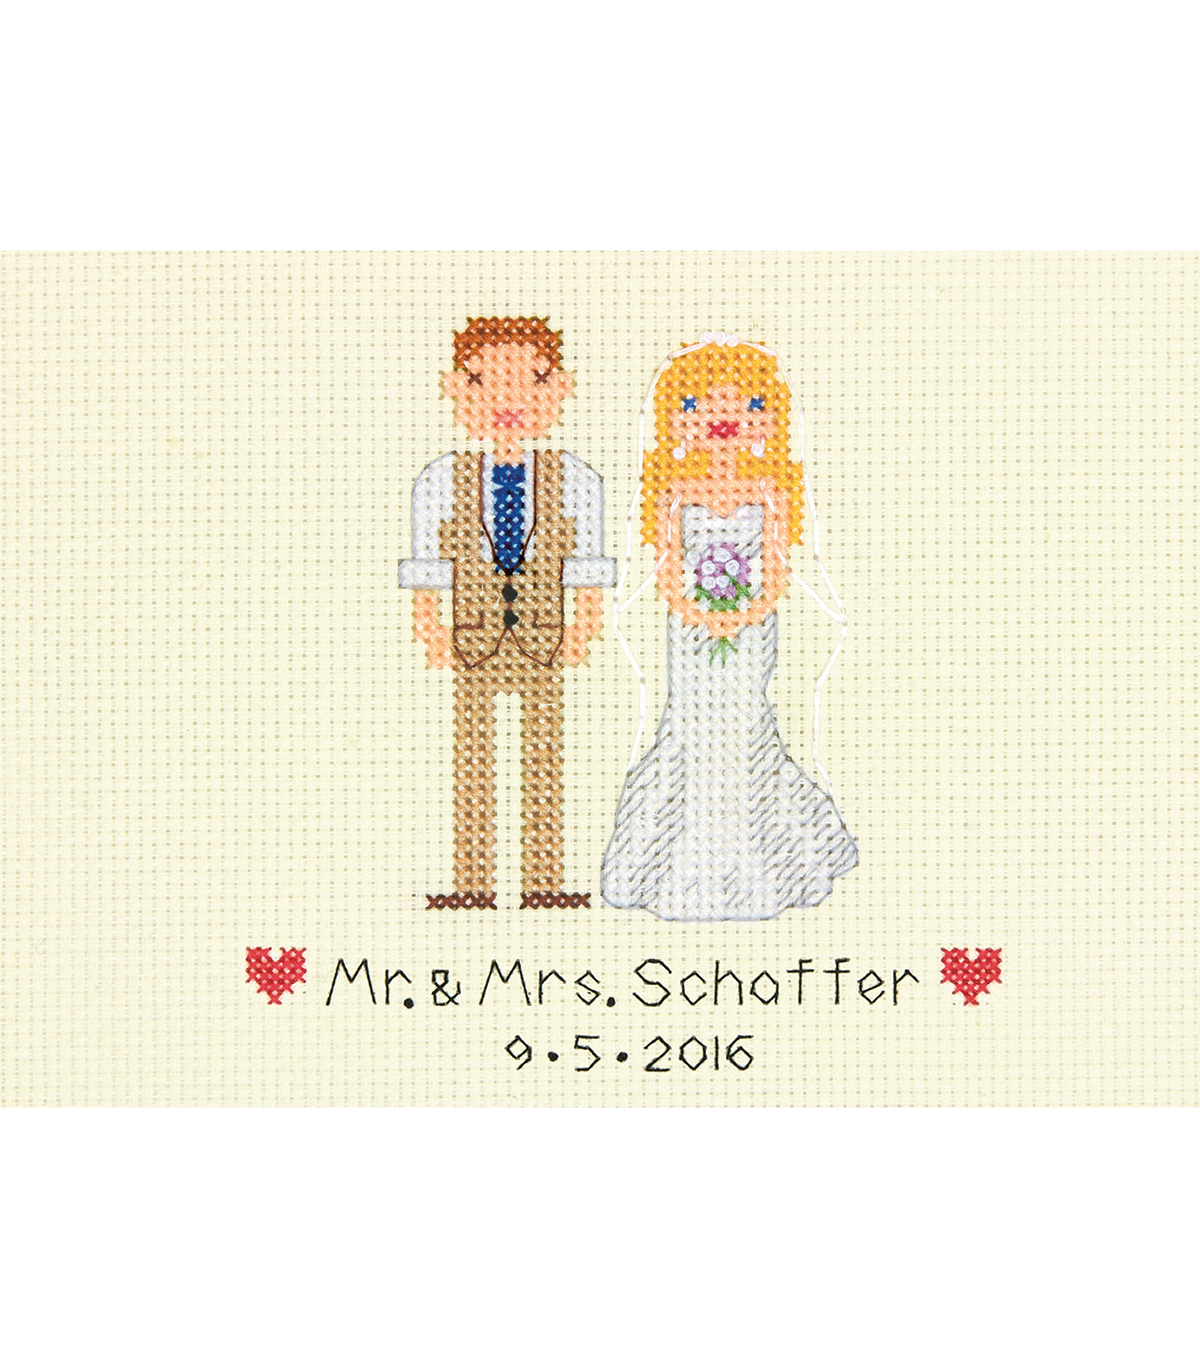 Wedding Marriage Big day Collage Counted Cross Stitch Kit